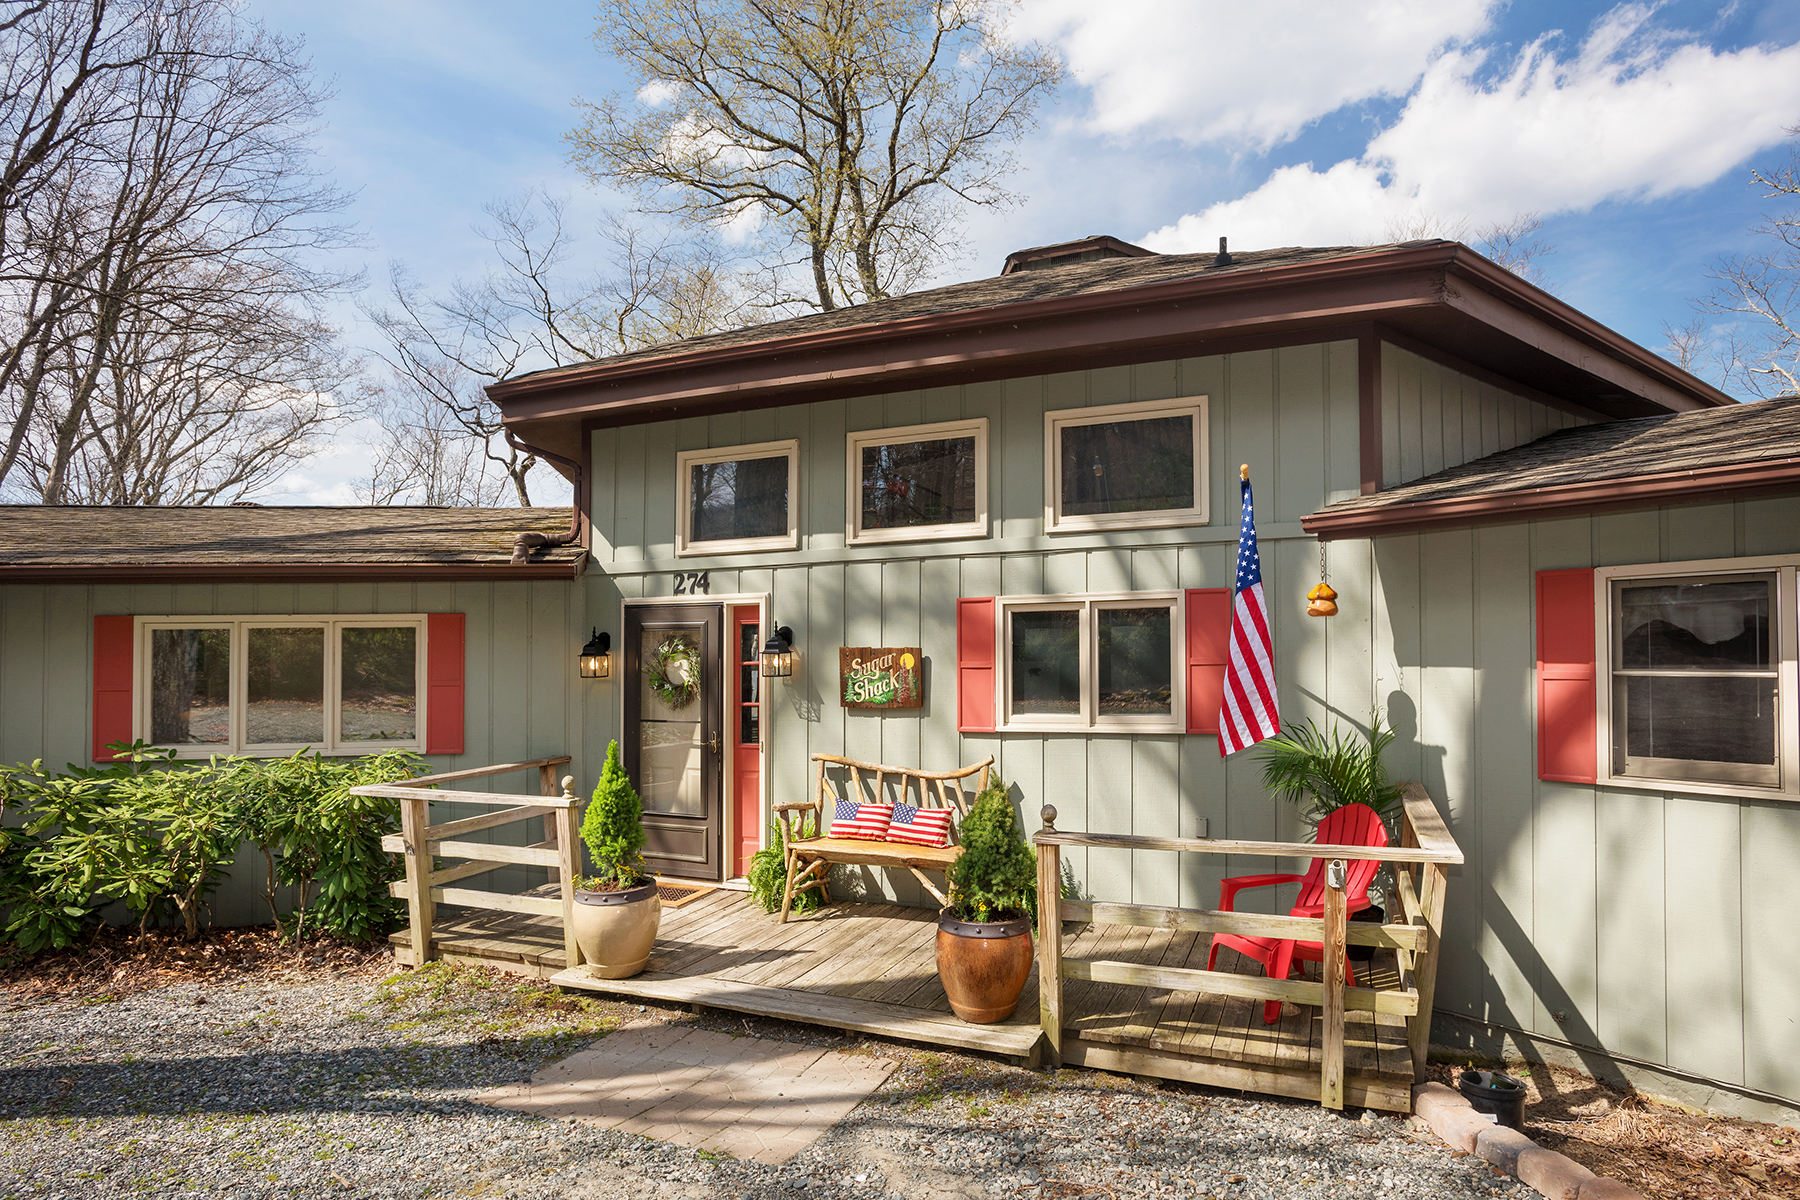 Single Family Home for Active at GROUSE FOREST - SUGAR MOUNTAIN 274 Green Cove Rd Sugar Mountain, North Carolina 28604 United States